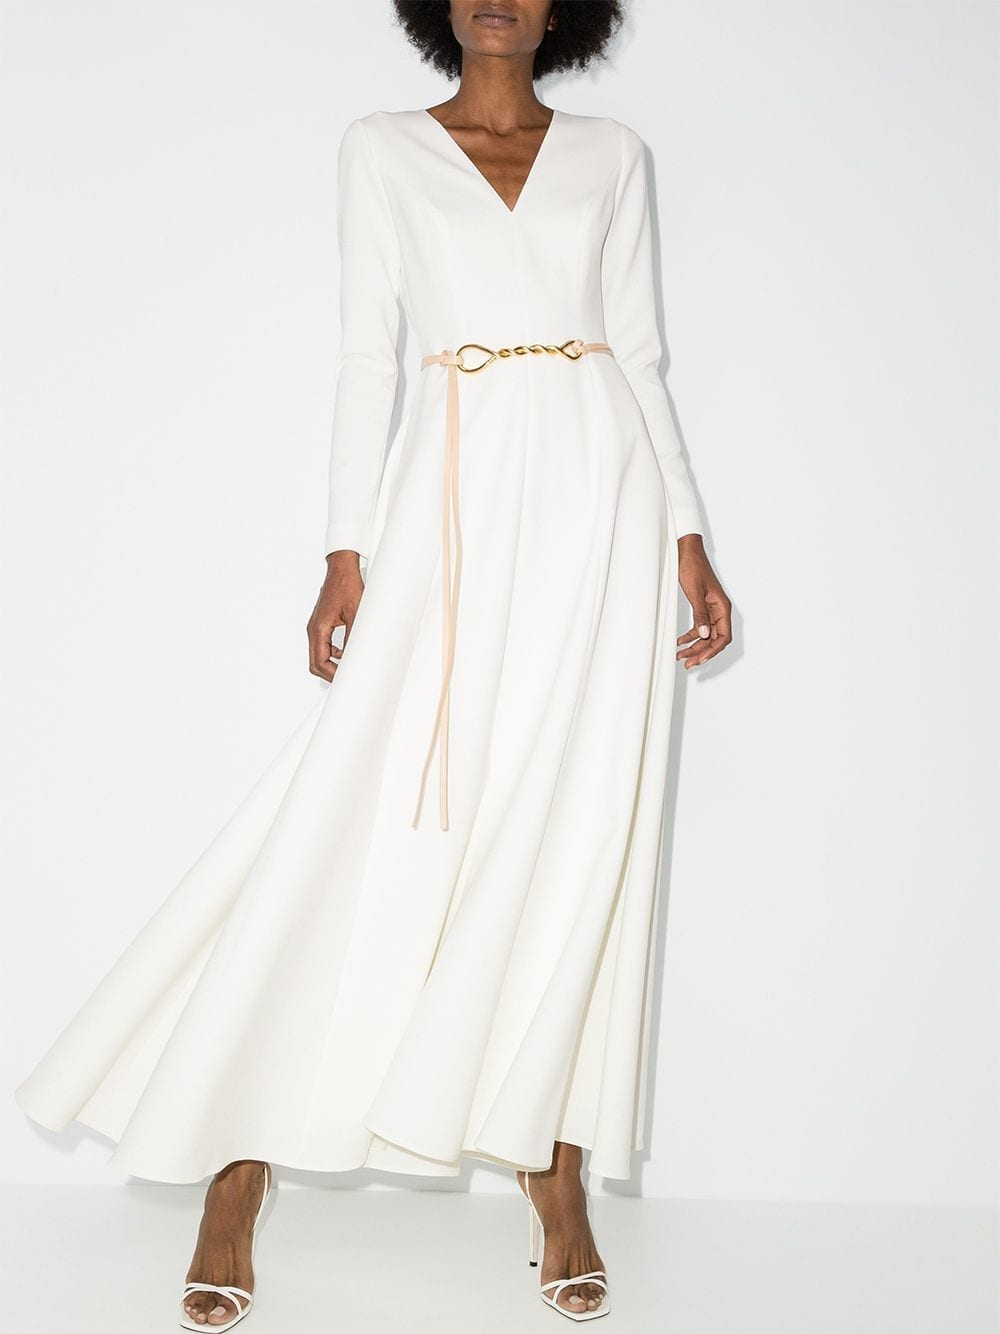 CAROLINA HERRERA A-line Maxi Dress